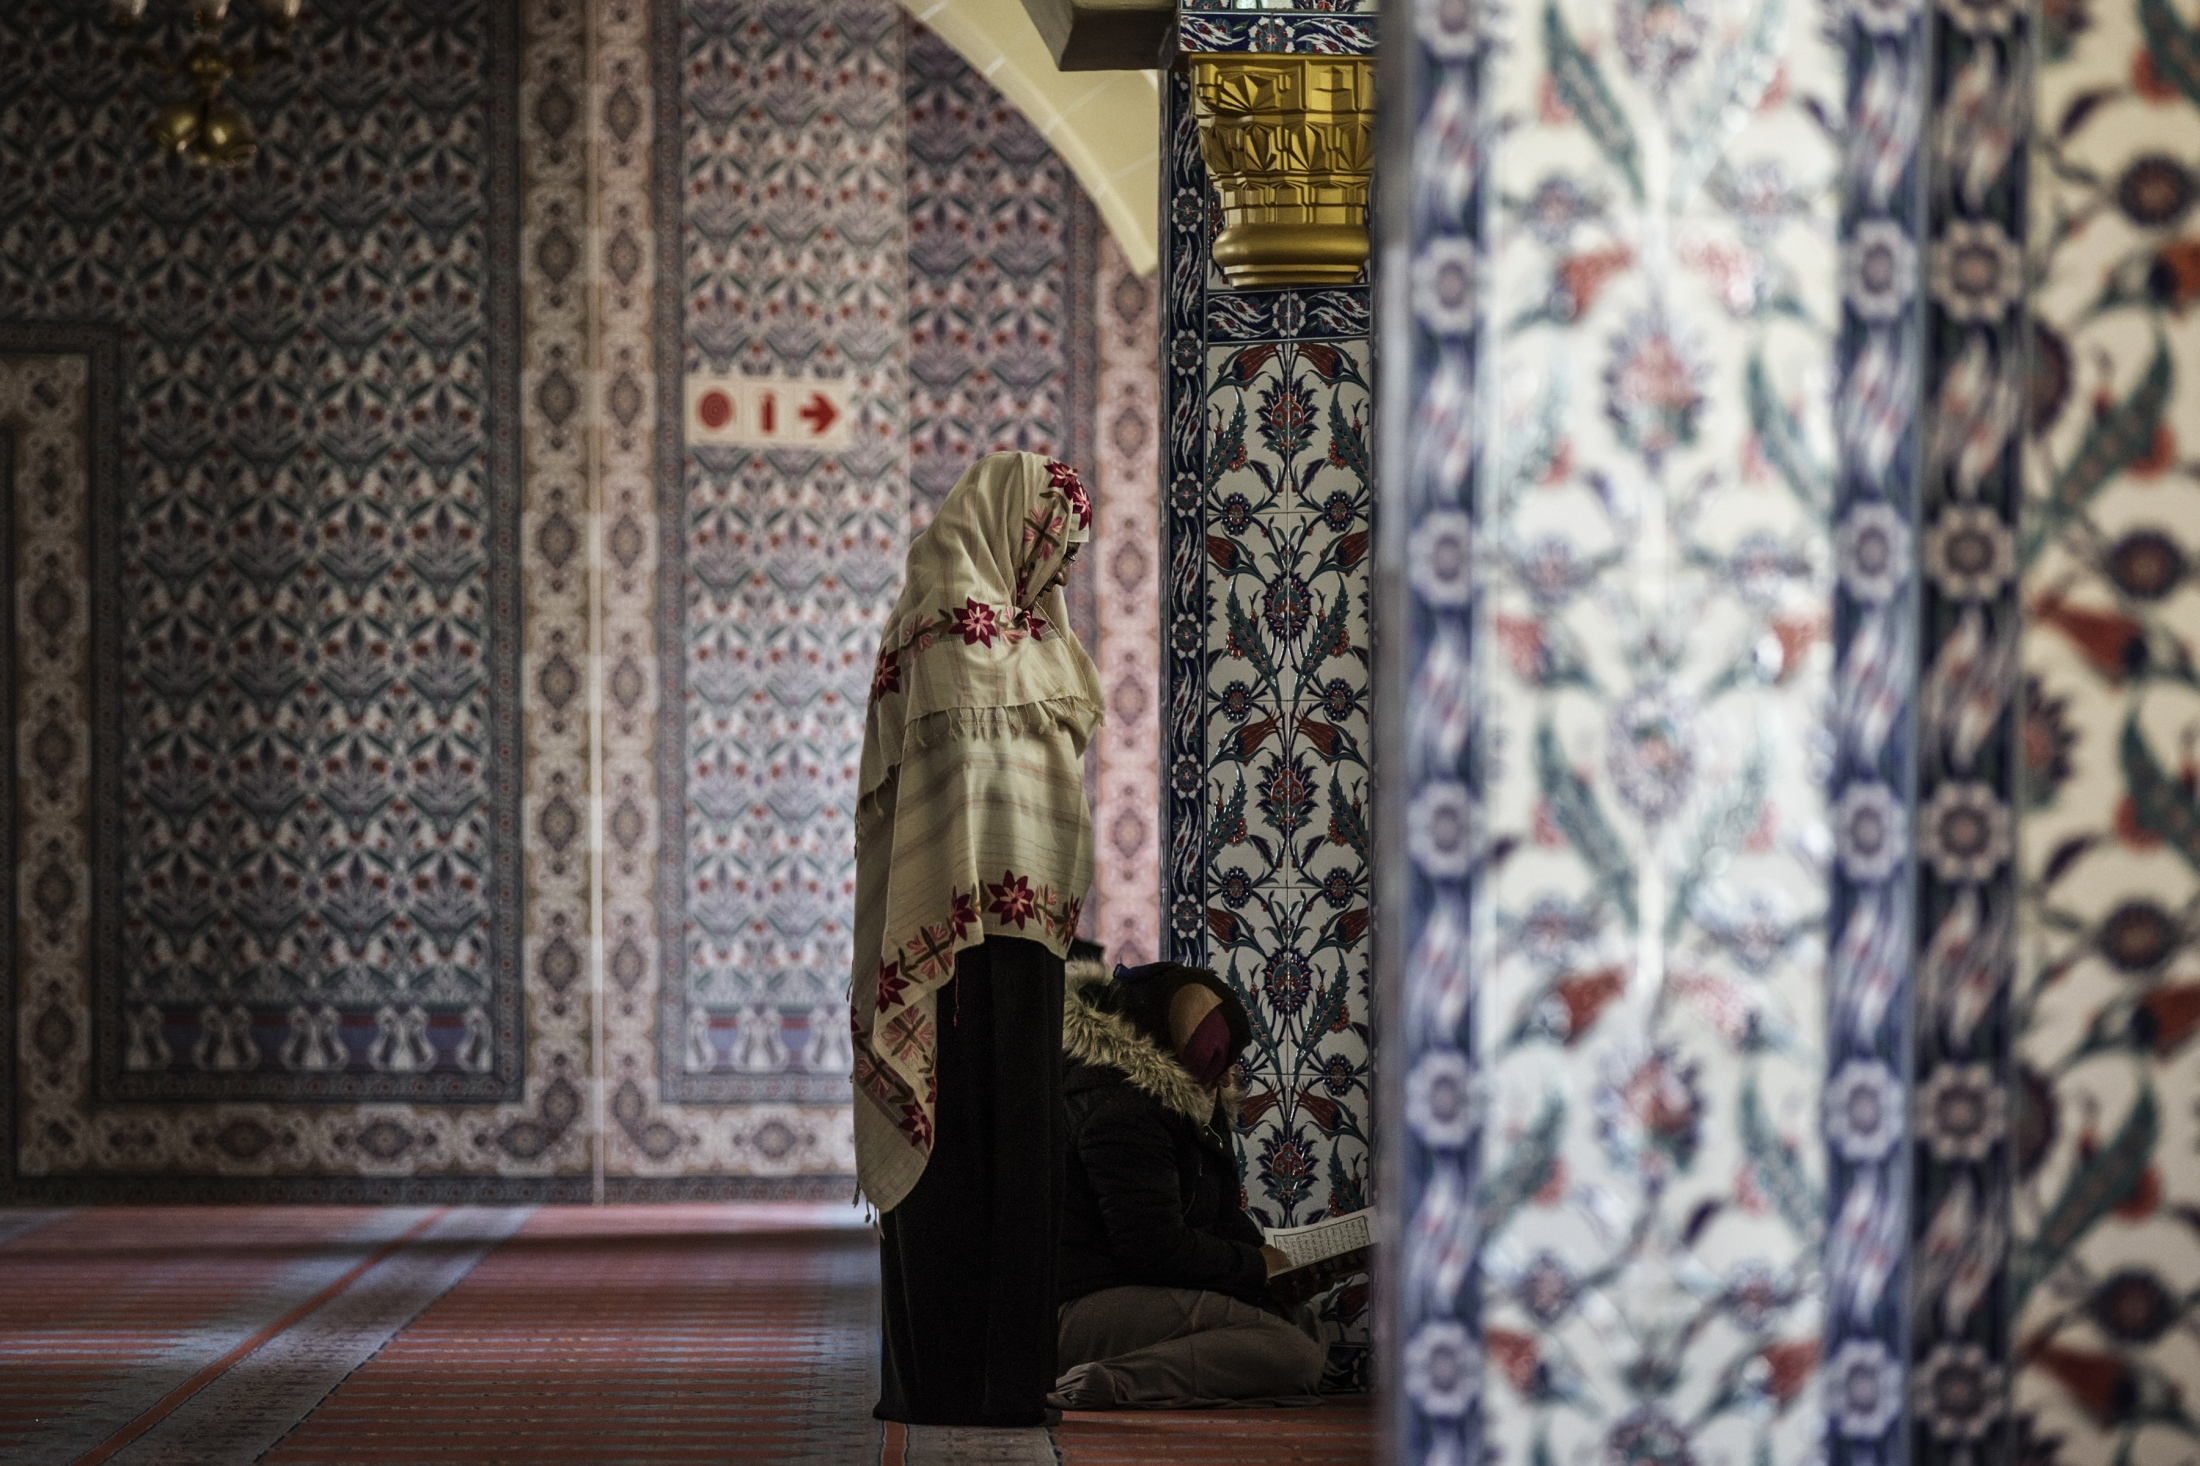 Women pray salah and recite the Quran during the Muslim holy month of fasting, Ramadan, at the Nizamiye Turkish Mosque. Johannesburg, South Africa. The mosque, built by the Turkish community in South Africa, was completed in 2012 and is an adaption of the 16th-century Ottoman Selimiye Mosque which is situated in Edirne, Turkey and it, including the school, museum and shopping complex situated in Midrand is a significant marking of the Turkish community's contribution to the South African landscape.